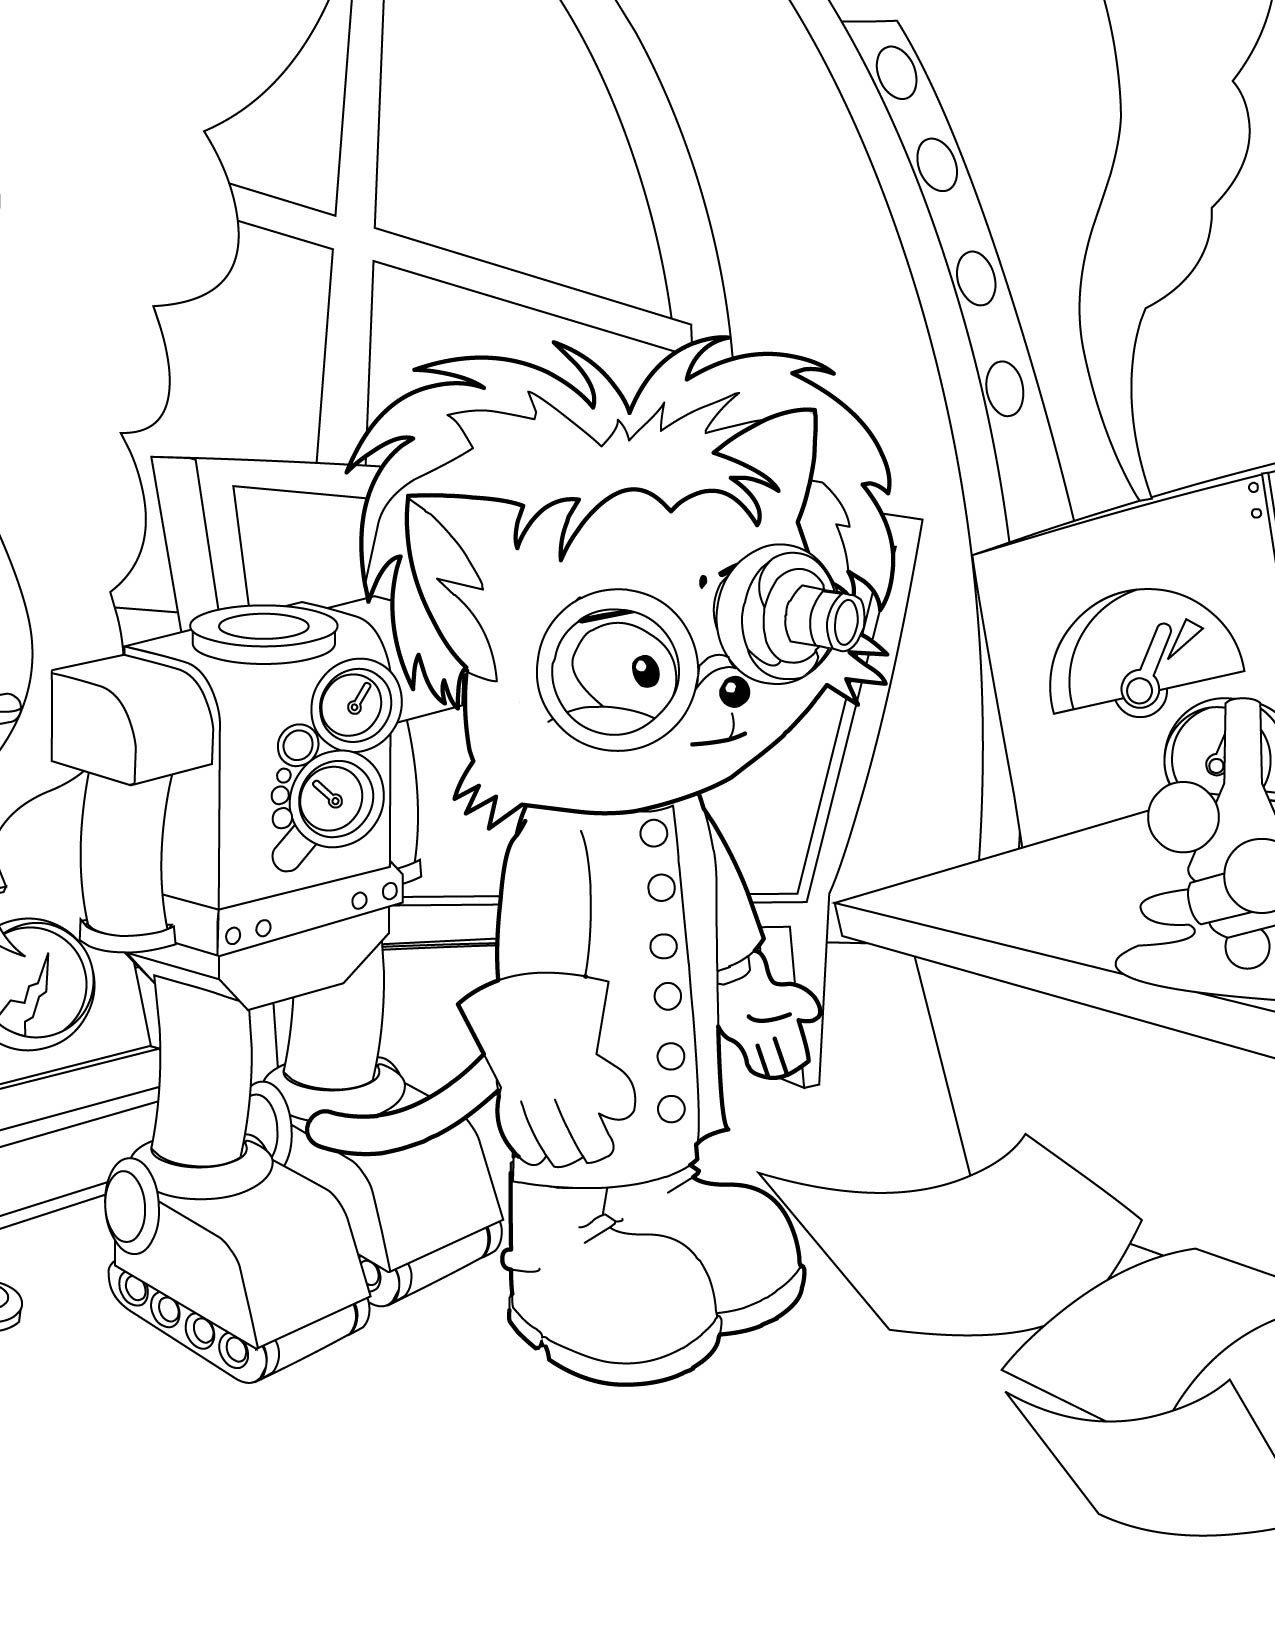 1275x1650 Mad Scientist Coloring Page Handipoints Cool Acpra